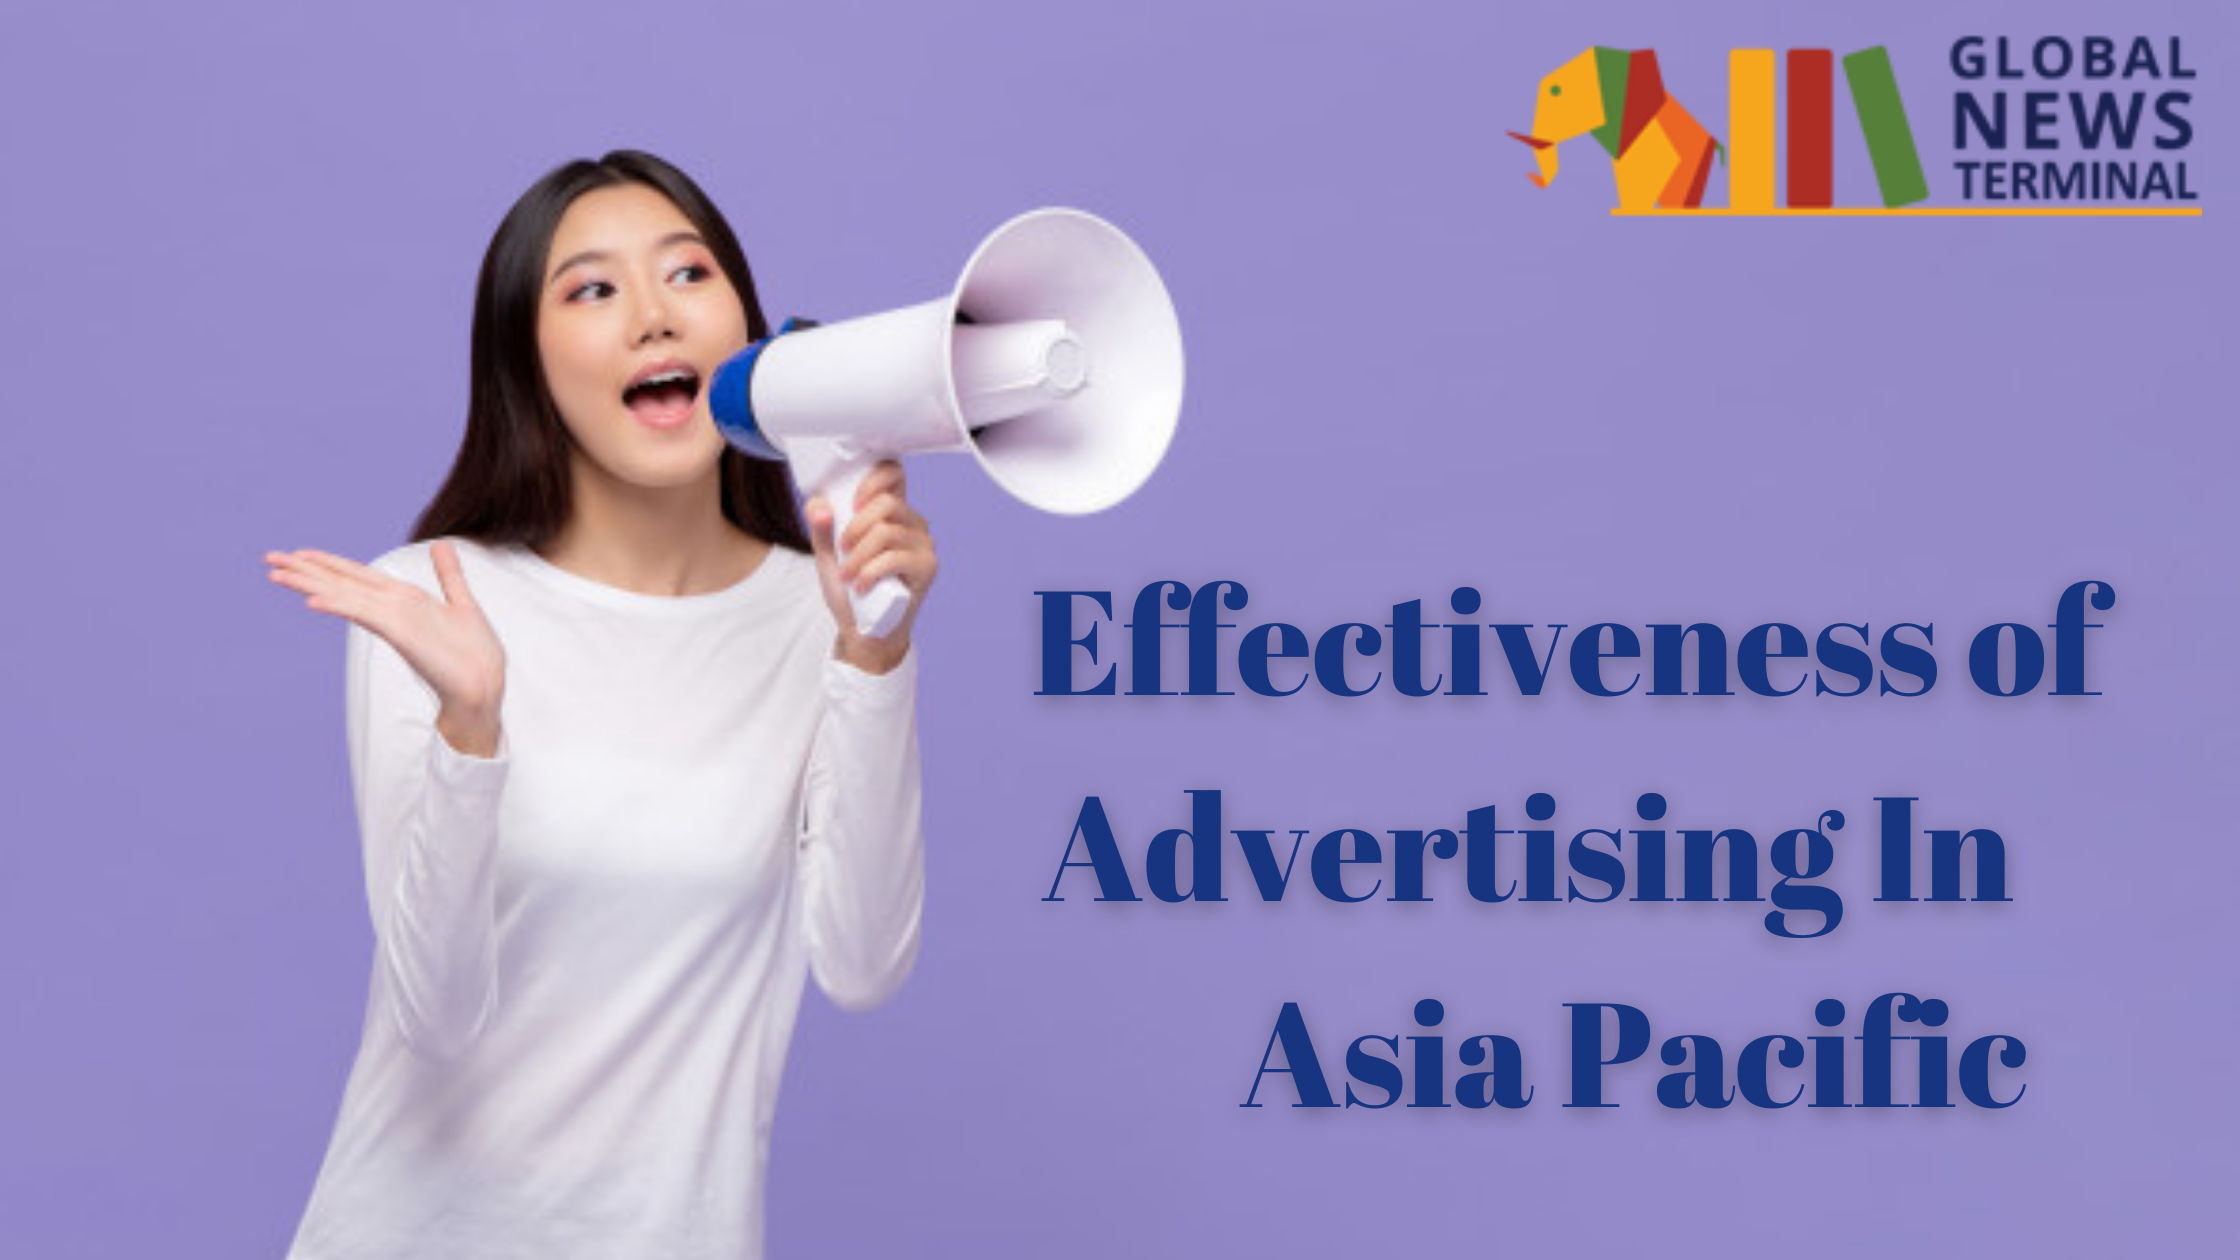 The Effectiveness of Advertising in the Asia Pacific